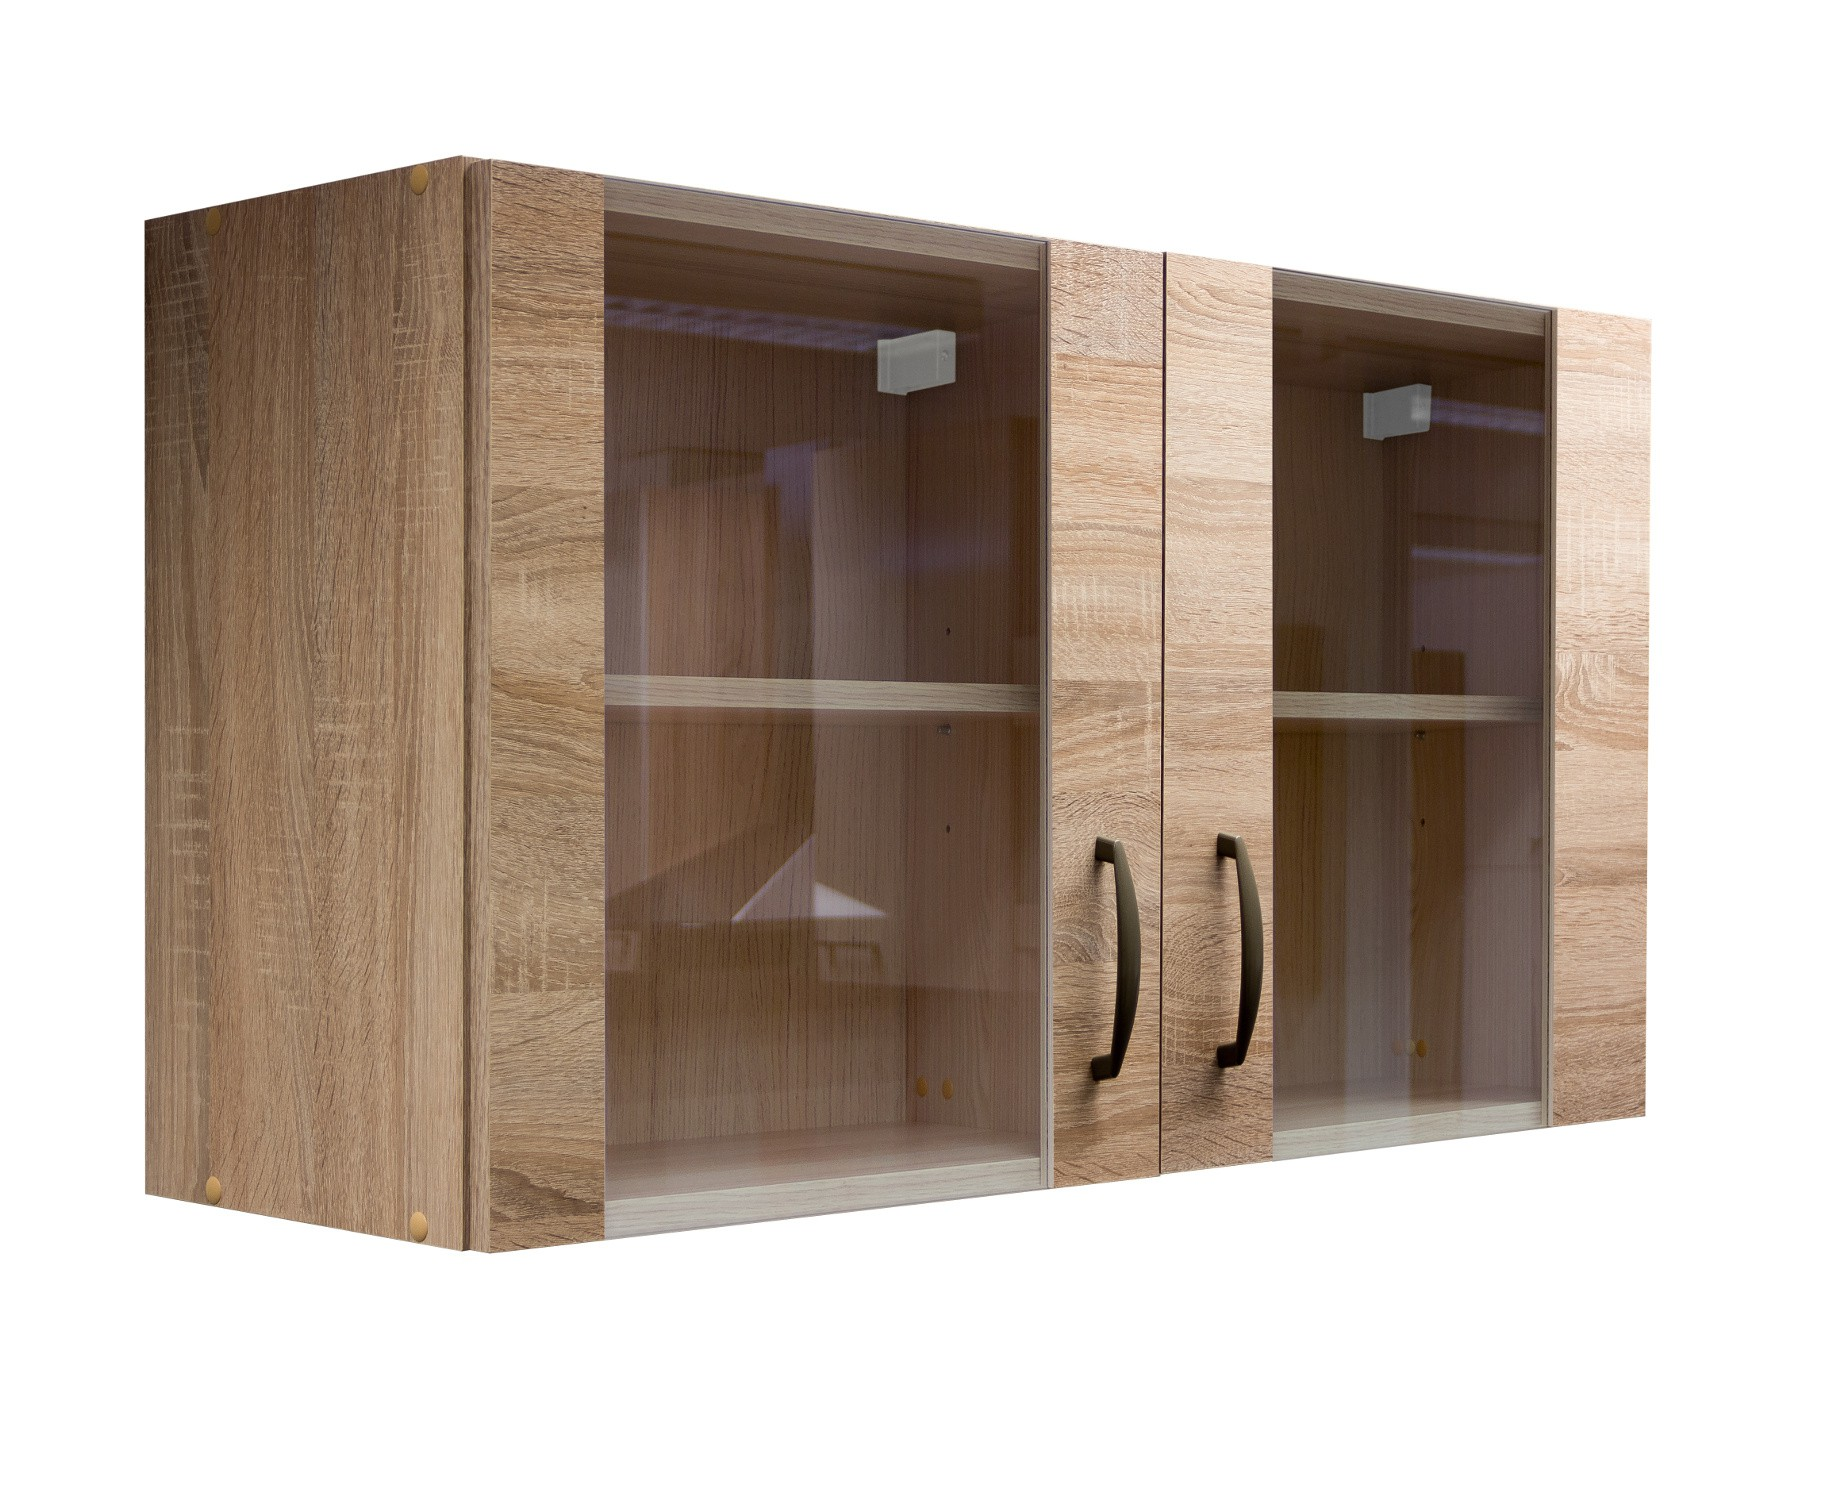 glas h ngeschrank herne k chen h ngeschrank oberschrank 100 cm eiche sonoma ebay. Black Bedroom Furniture Sets. Home Design Ideas